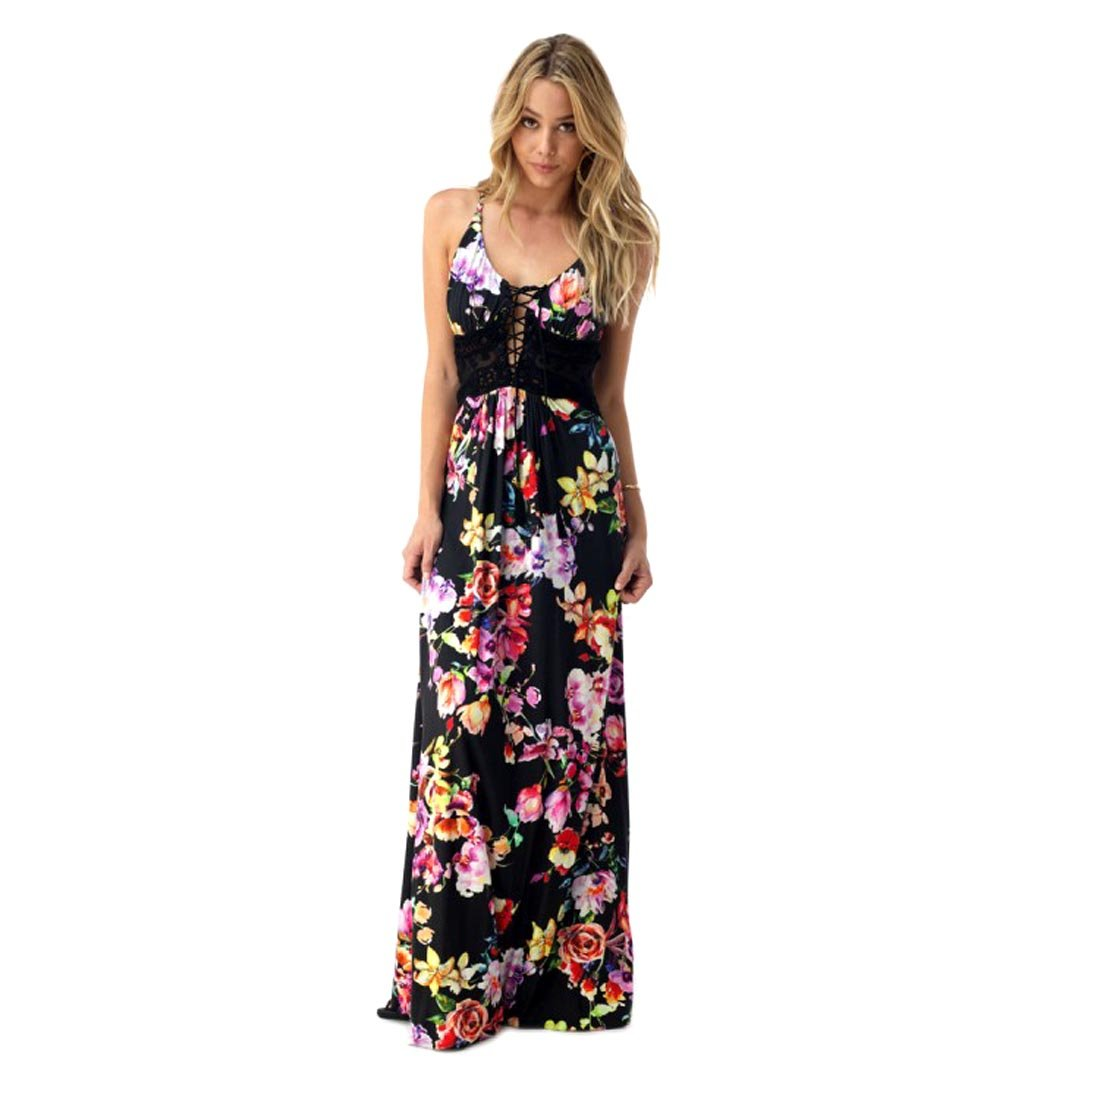 Sky Collection Black Floral Rafe Corset Style Sleeveless Maxi Dress, Large by Crazy4Bling